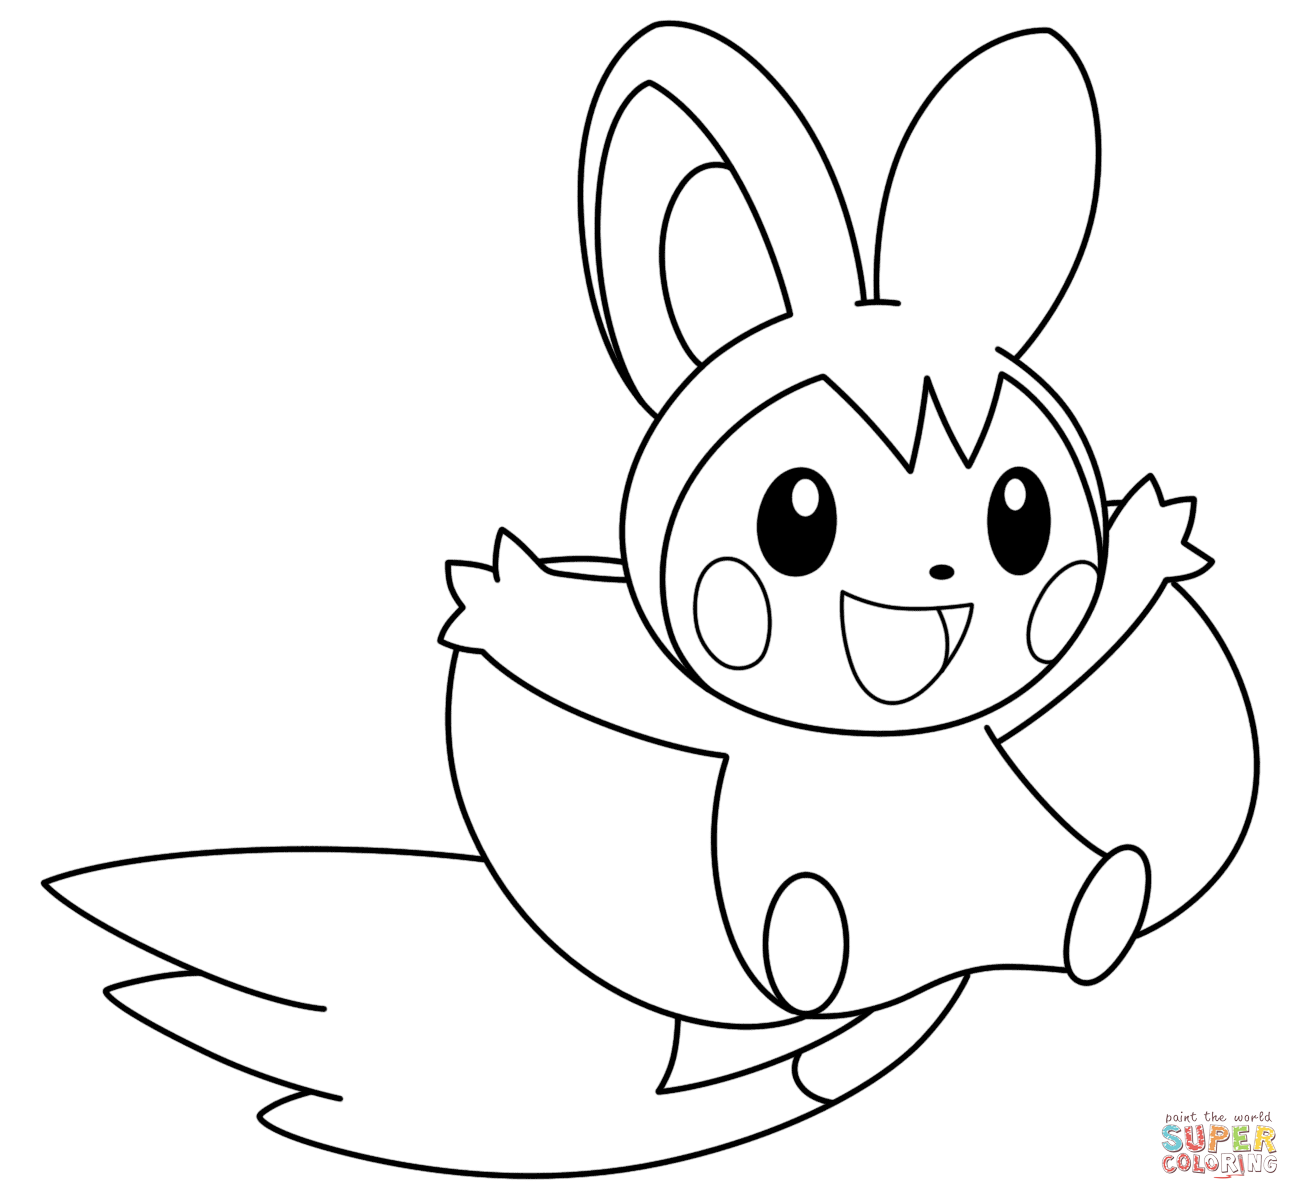 pokemon colouring in pictures pokemon coloring pages join your favorite pokemon on an pictures colouring in pokemon